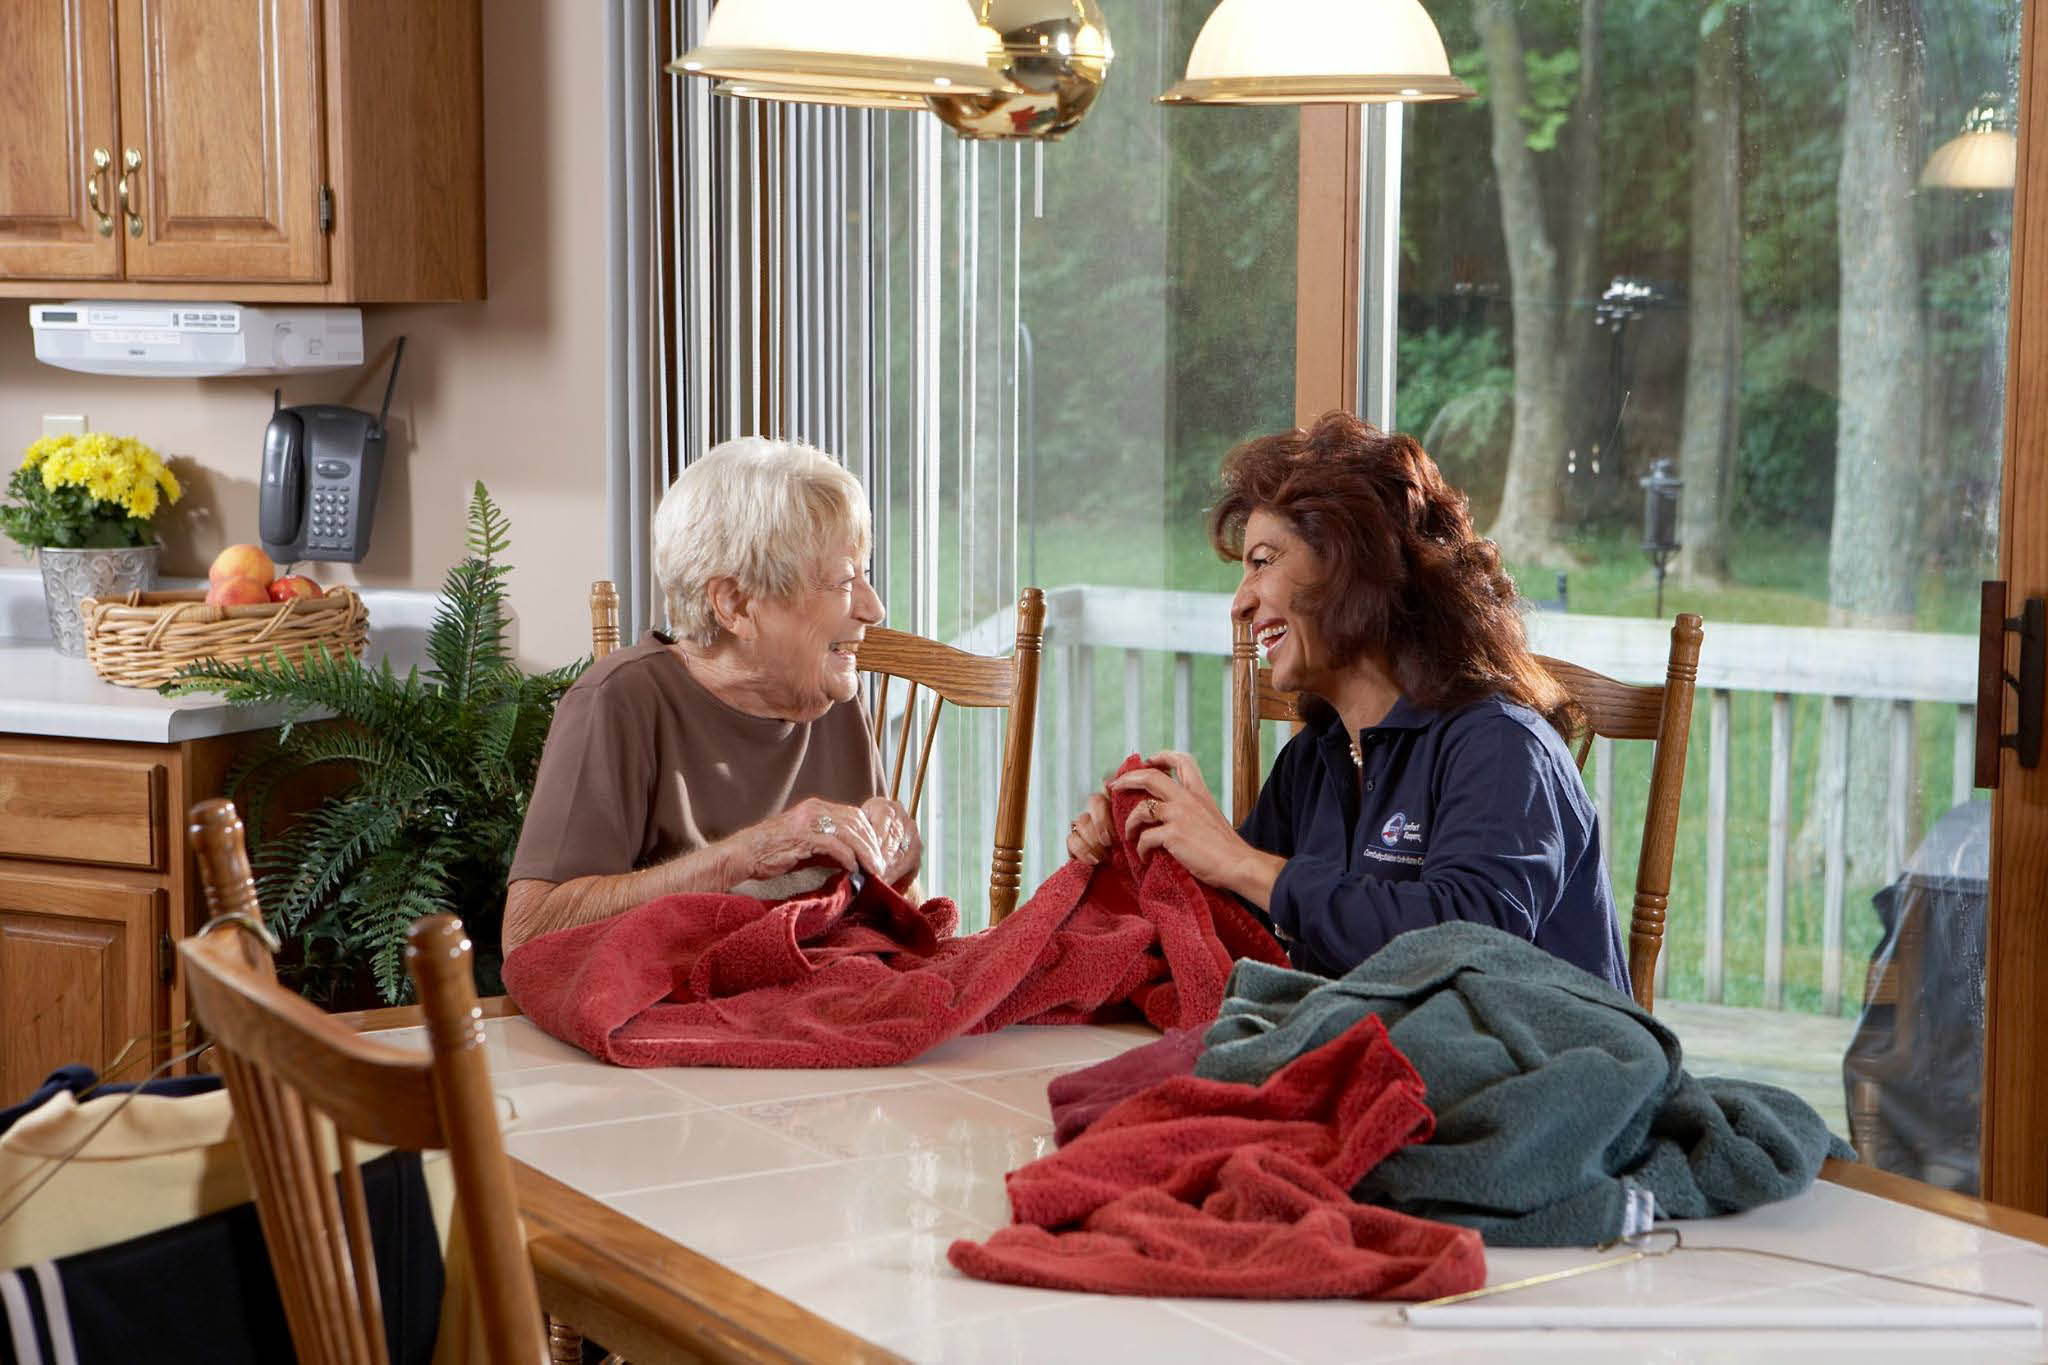 at home care Bergen County New Jersey senior helpers New Jersey helping hands home care NJ home care solutions Rochelle Park New Jersey nursing care NJ Home Health Aid Rochelle Park New Jersey Nursing Agency NJ